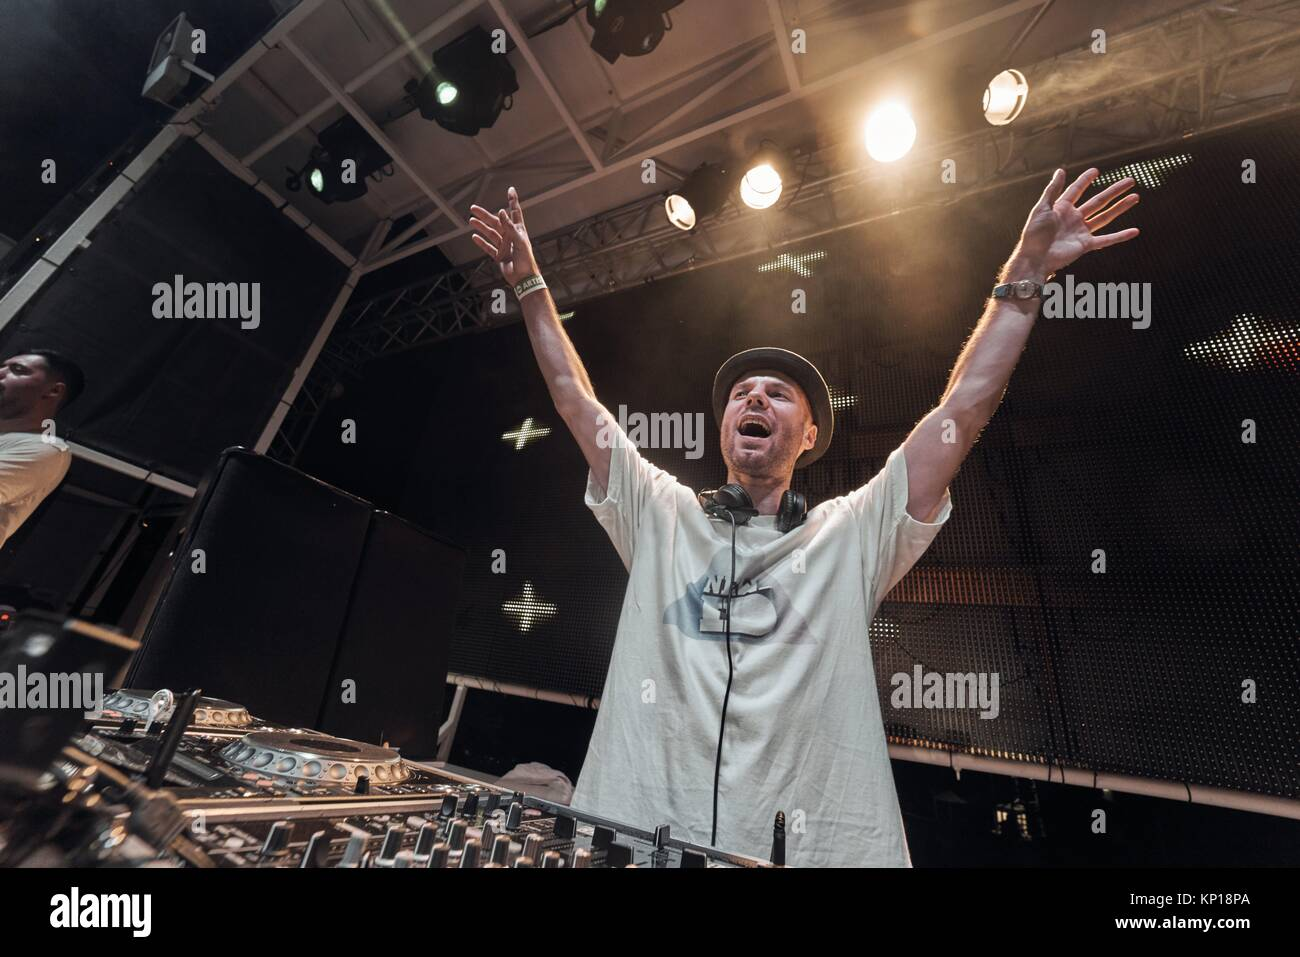 DJ New ID performing at edm music festival Starbeach in Hersonissos, Crete, Greece, on 21. August 2017 - Stock Image